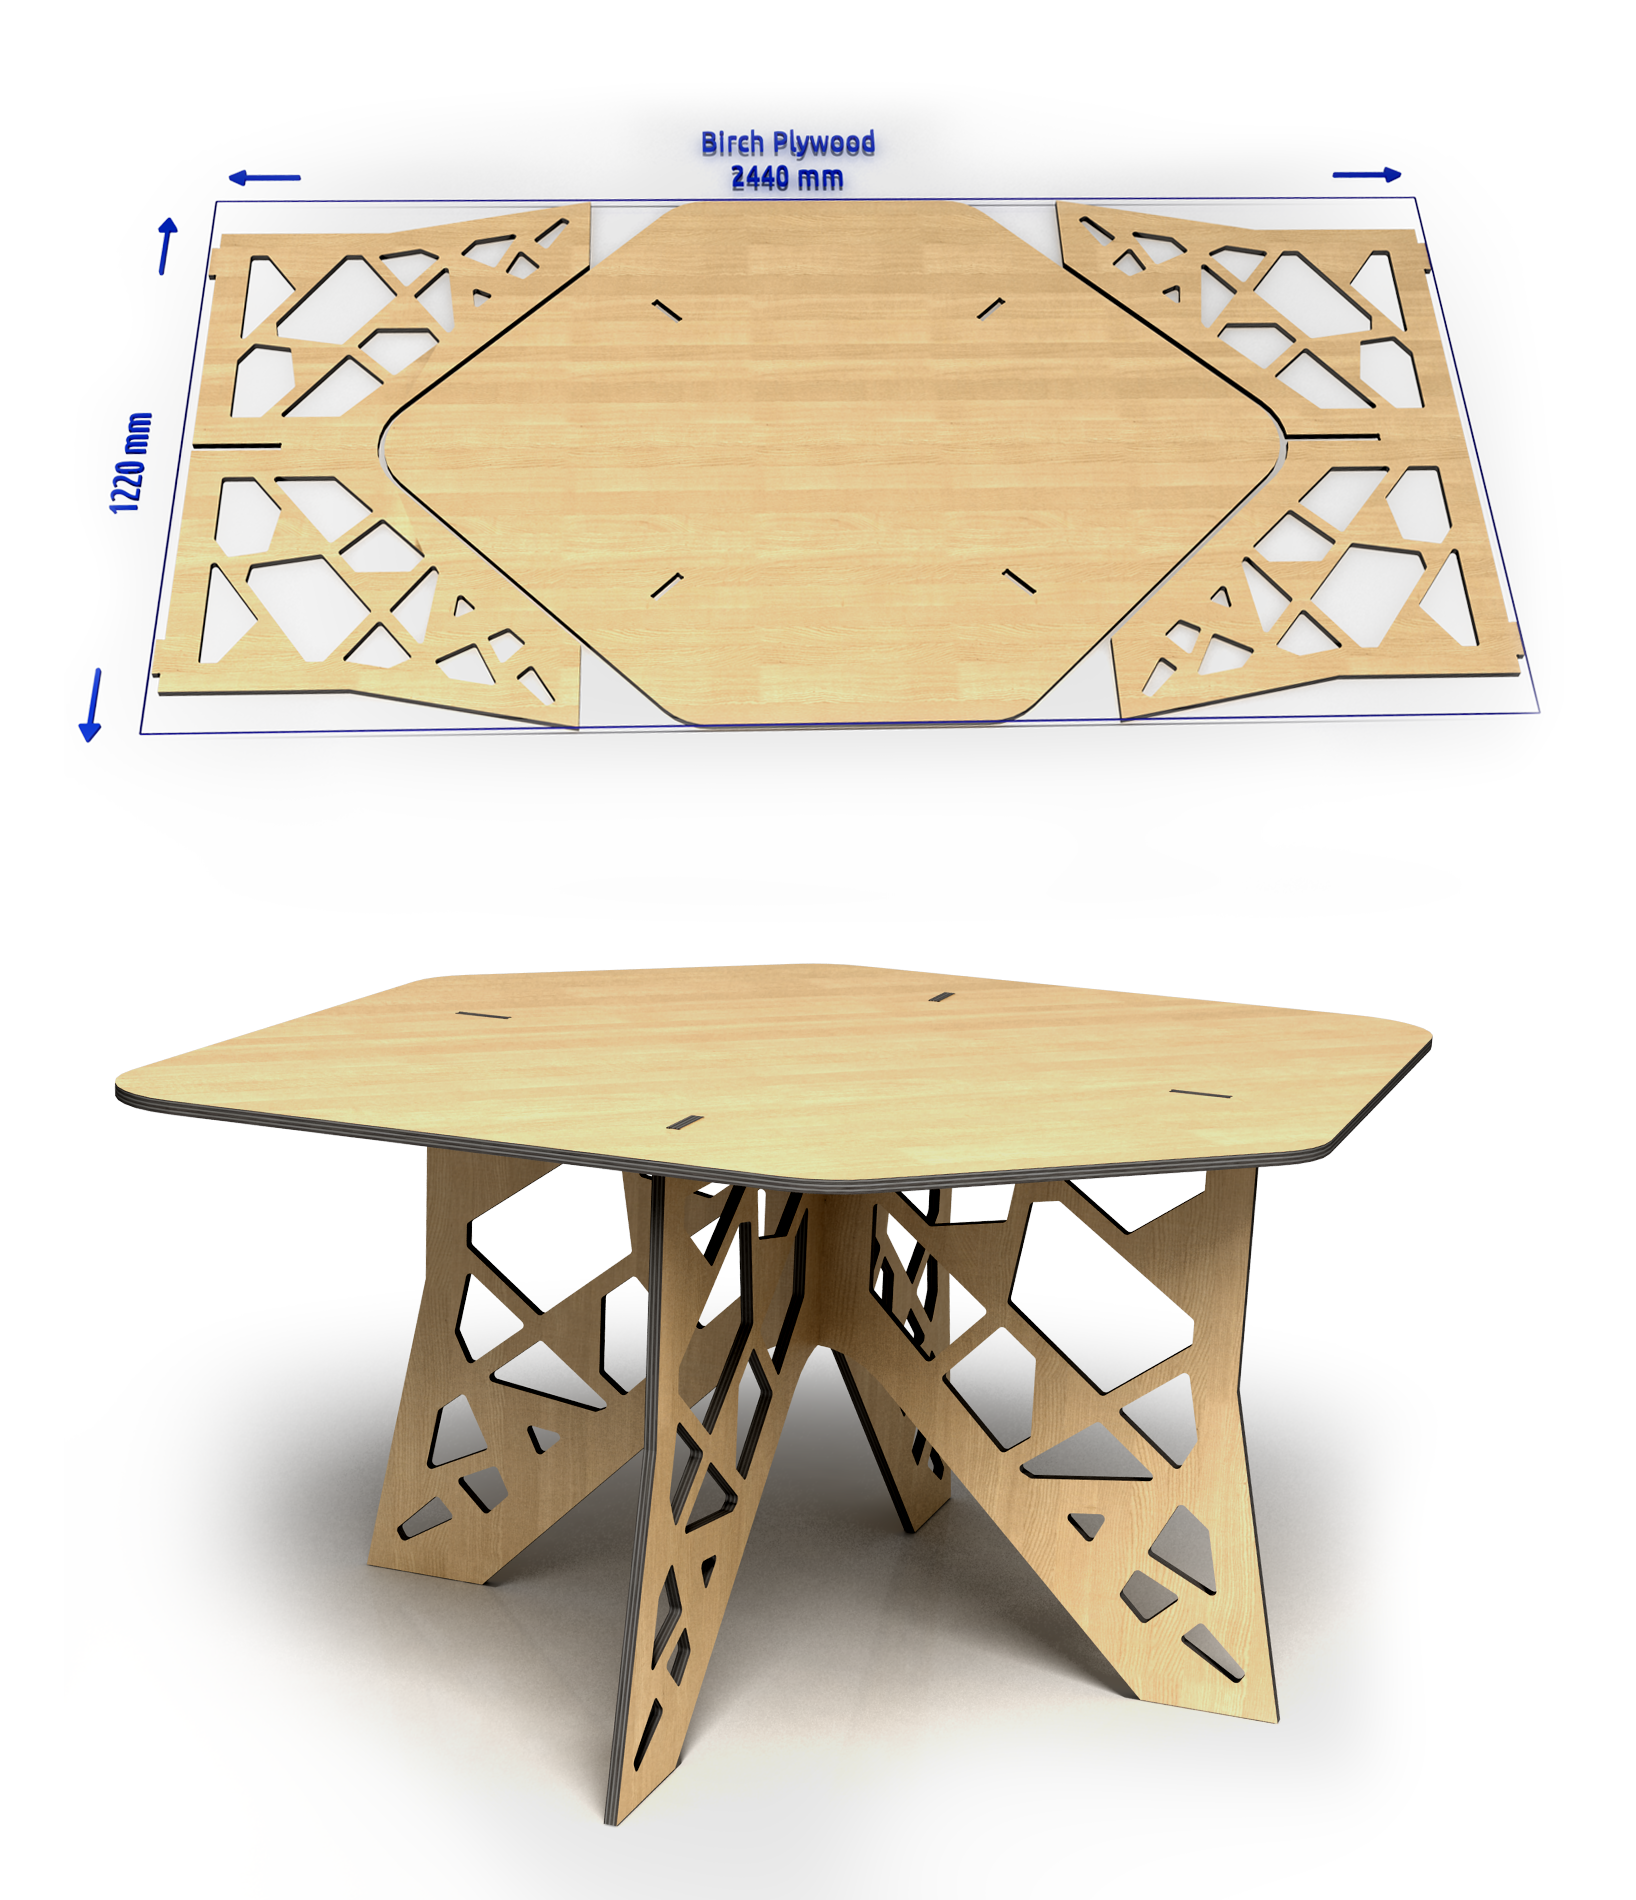 Birch Plywood Sheet To The Table Cnc Furniture Plans Plywood Furniture Cnc Furniture